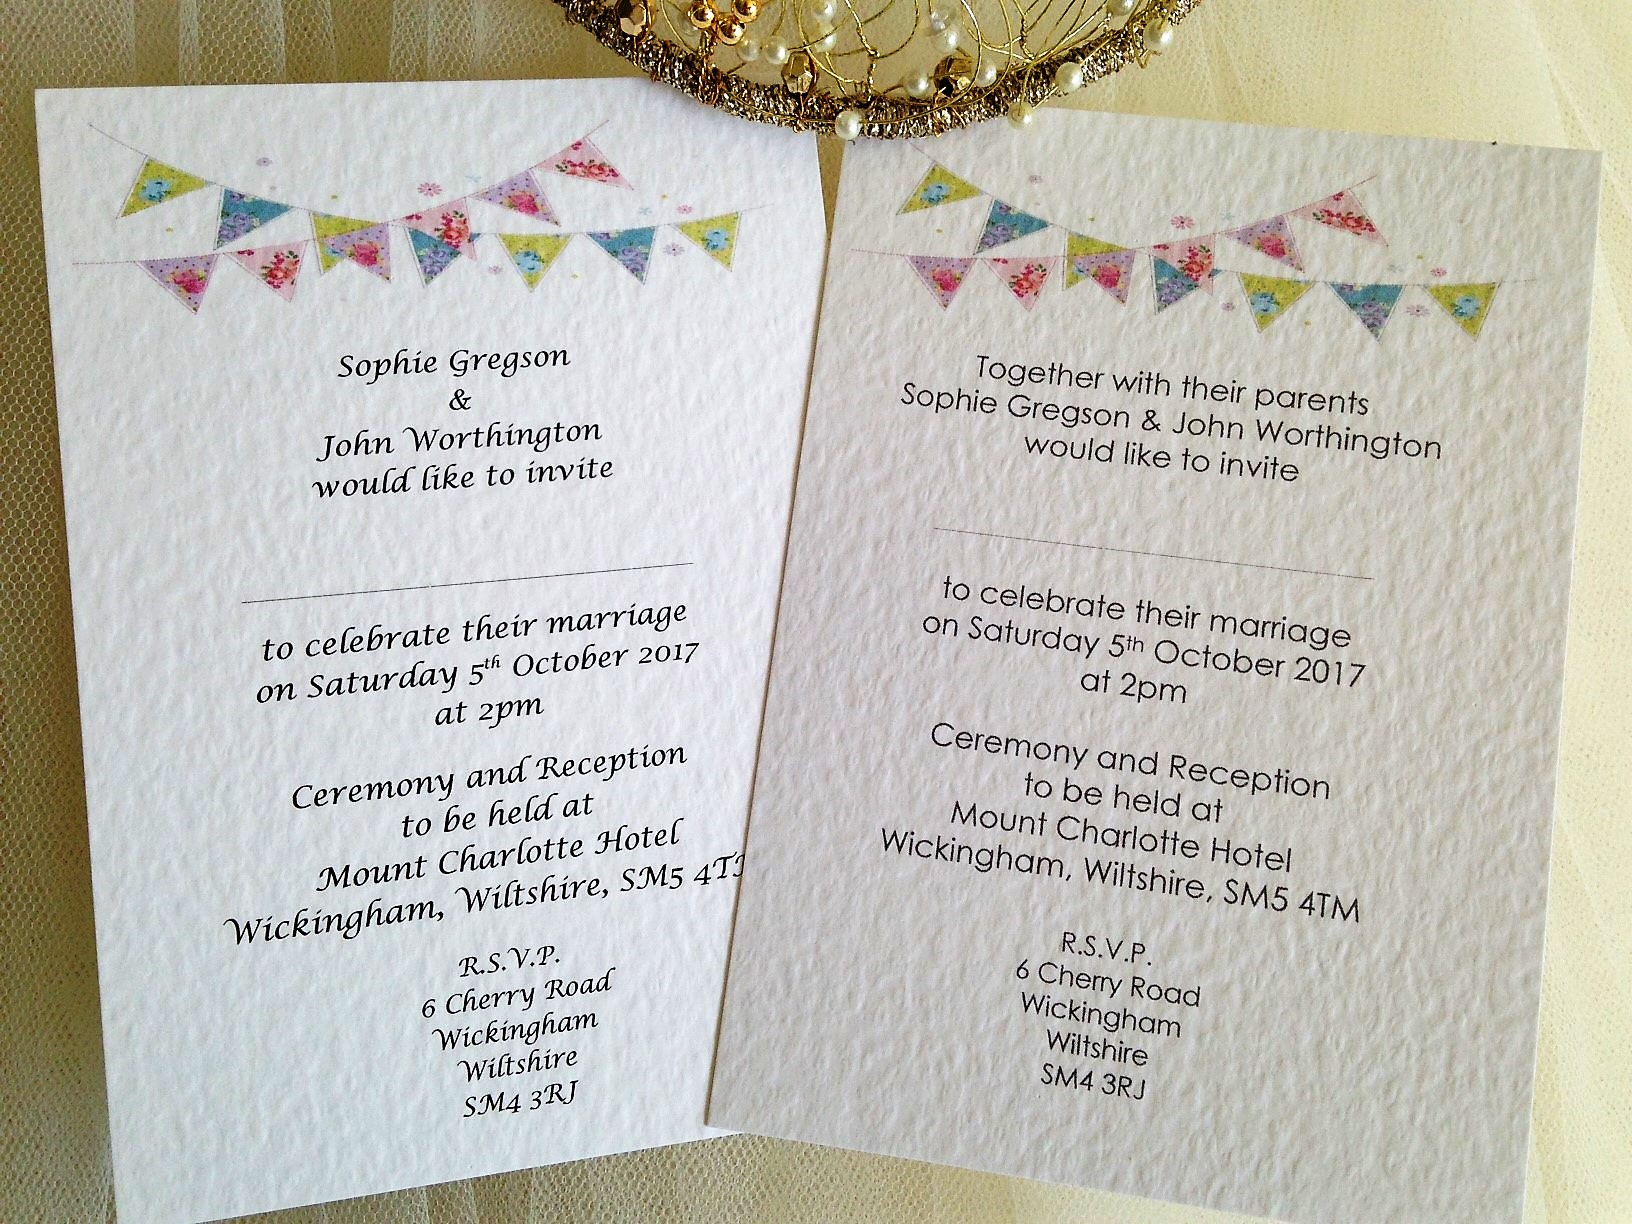 wedding invitations information to include - 28 images - wedding ...